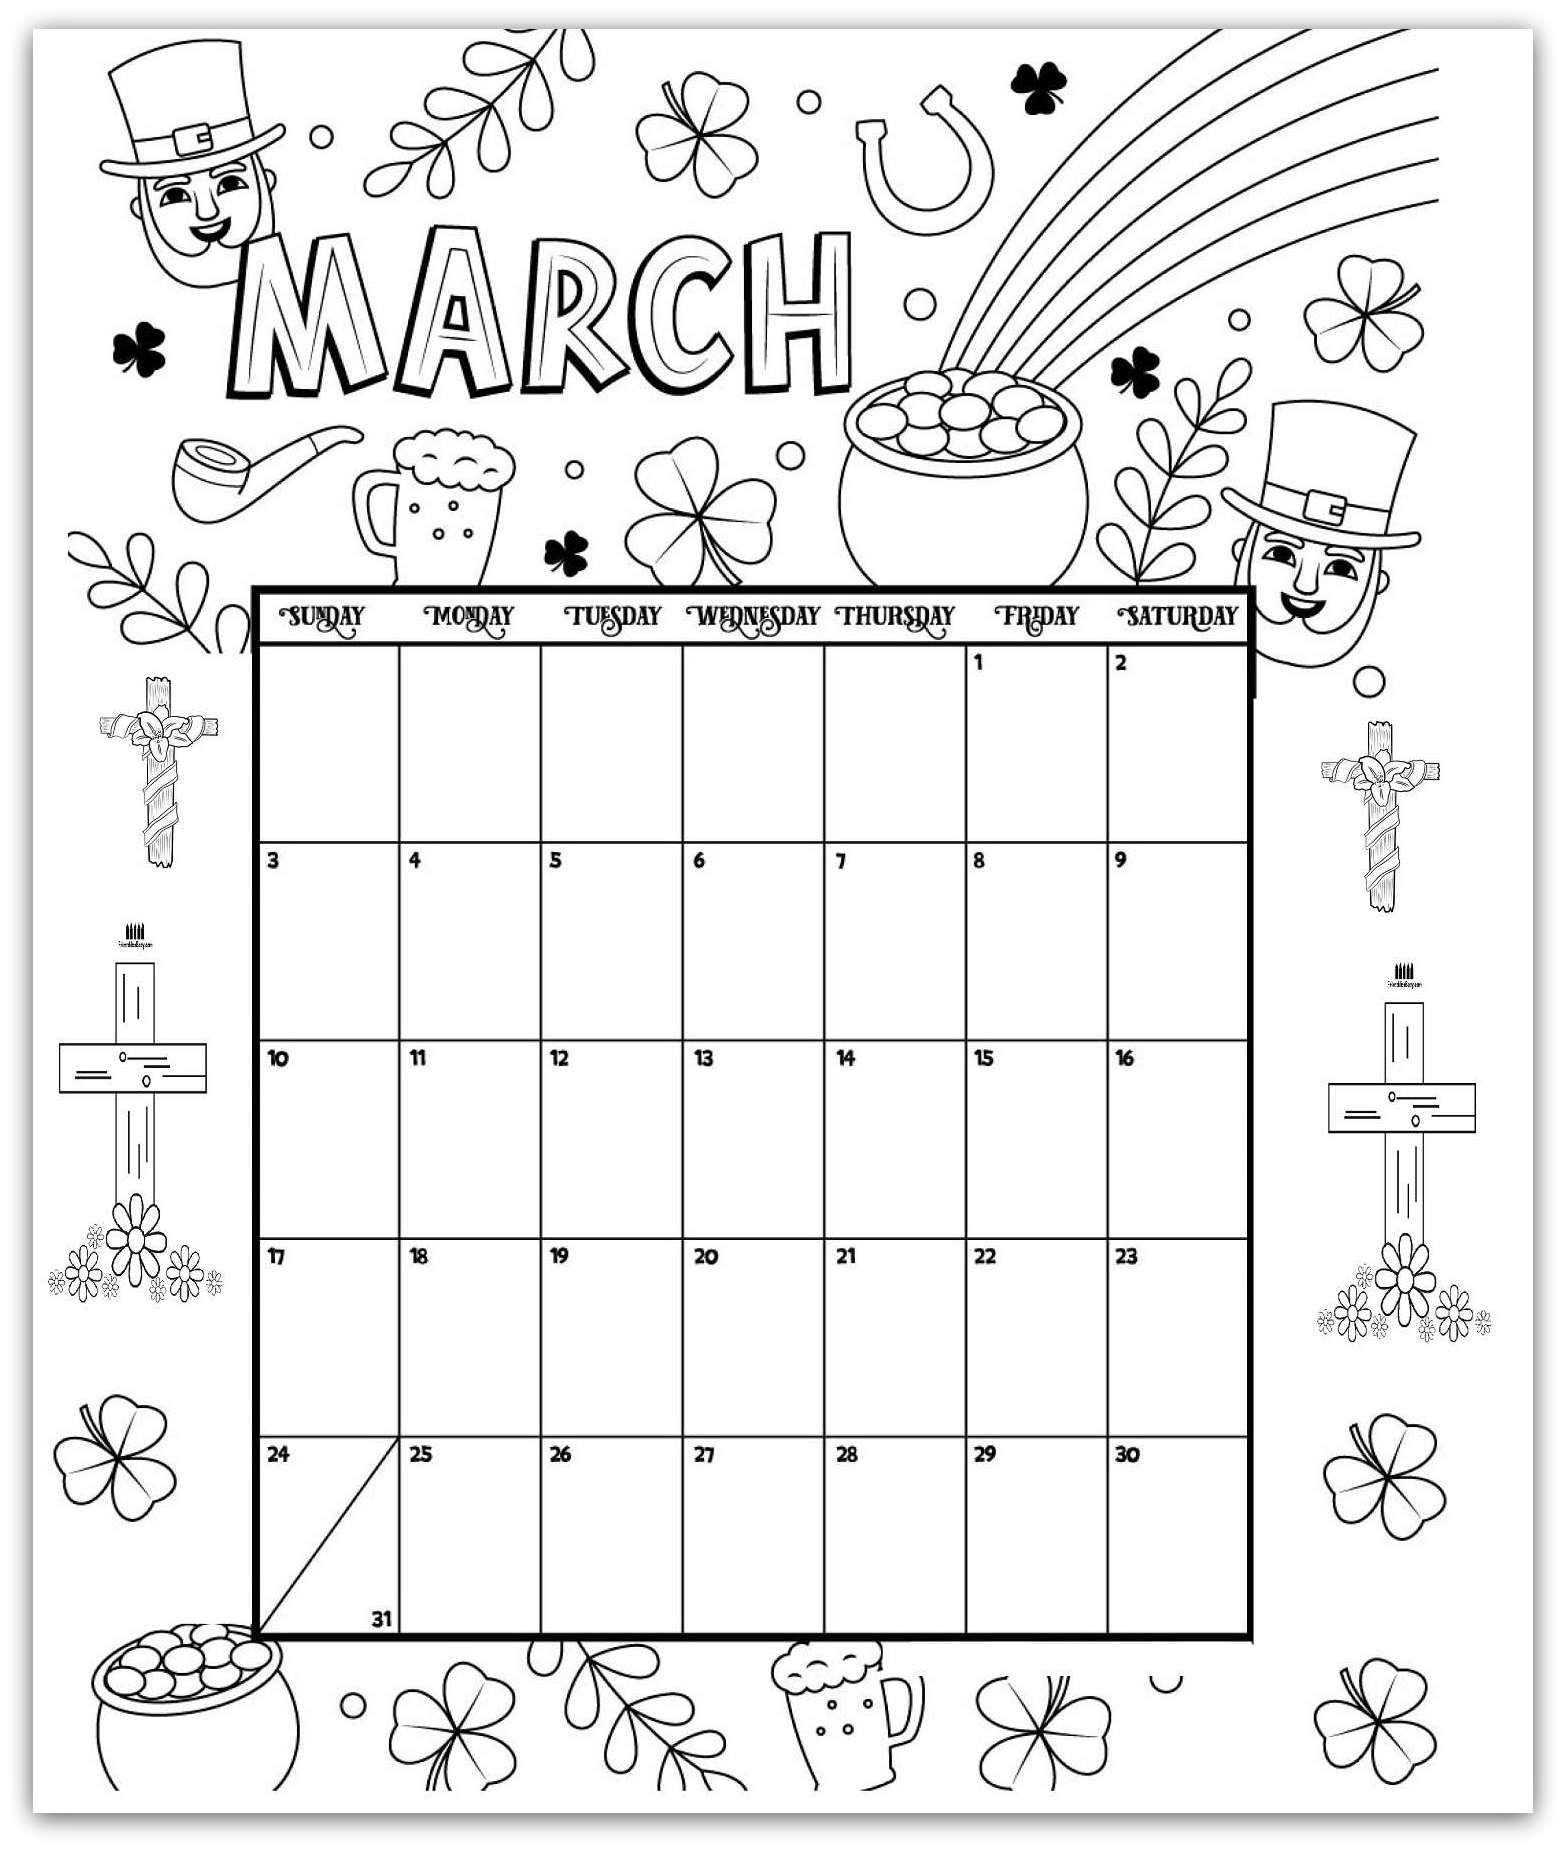 March Coloring Page Printable Calendar